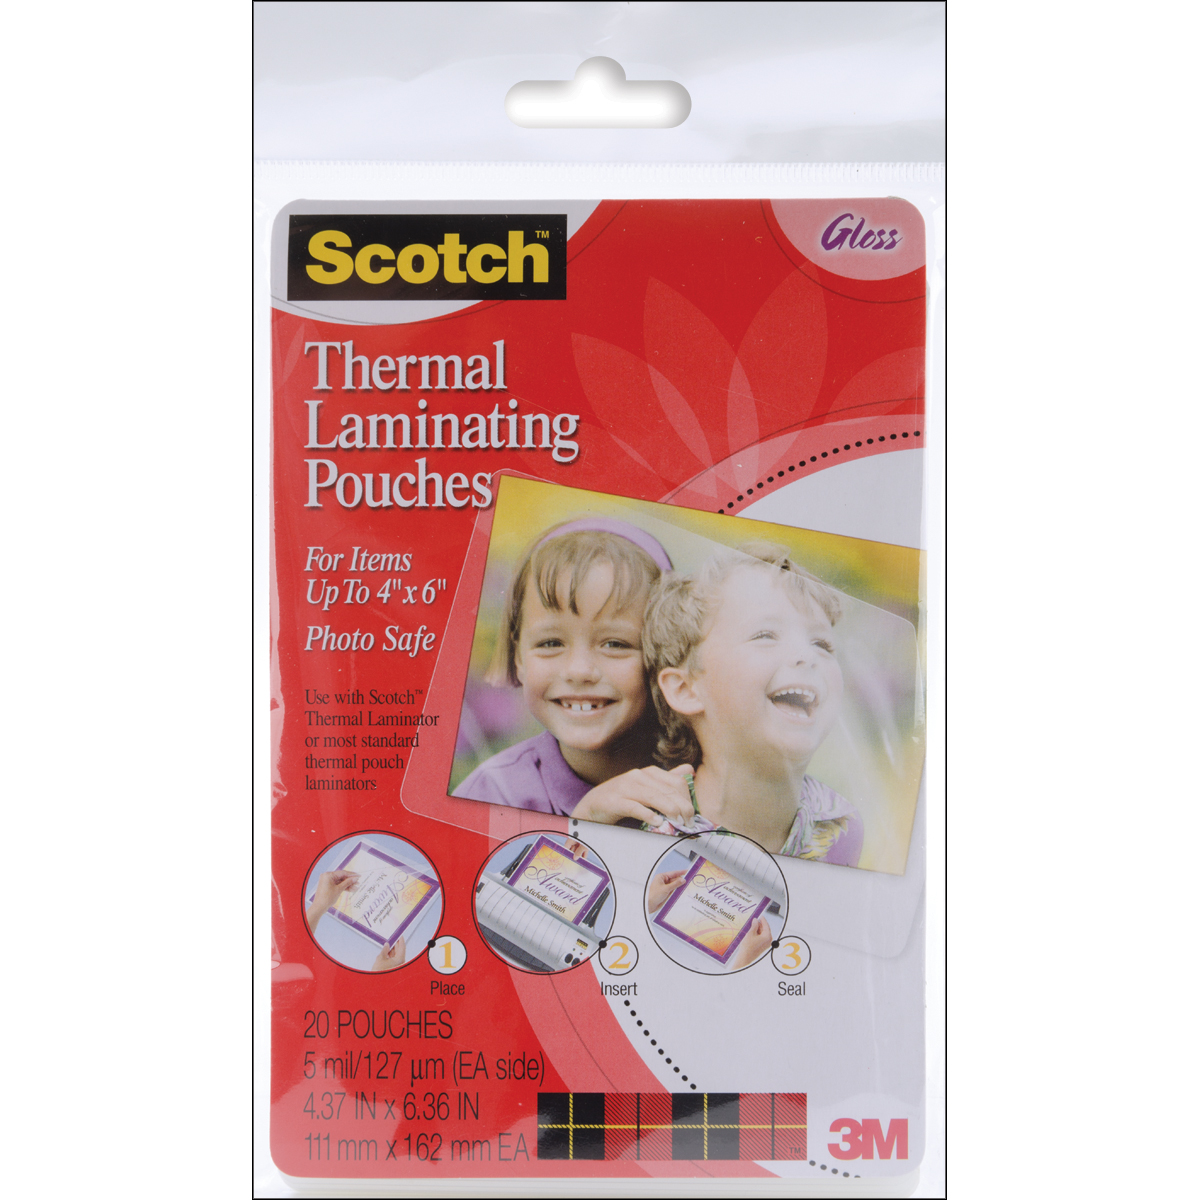 Scotch Thermal Laminator Pouches 20/Pkg